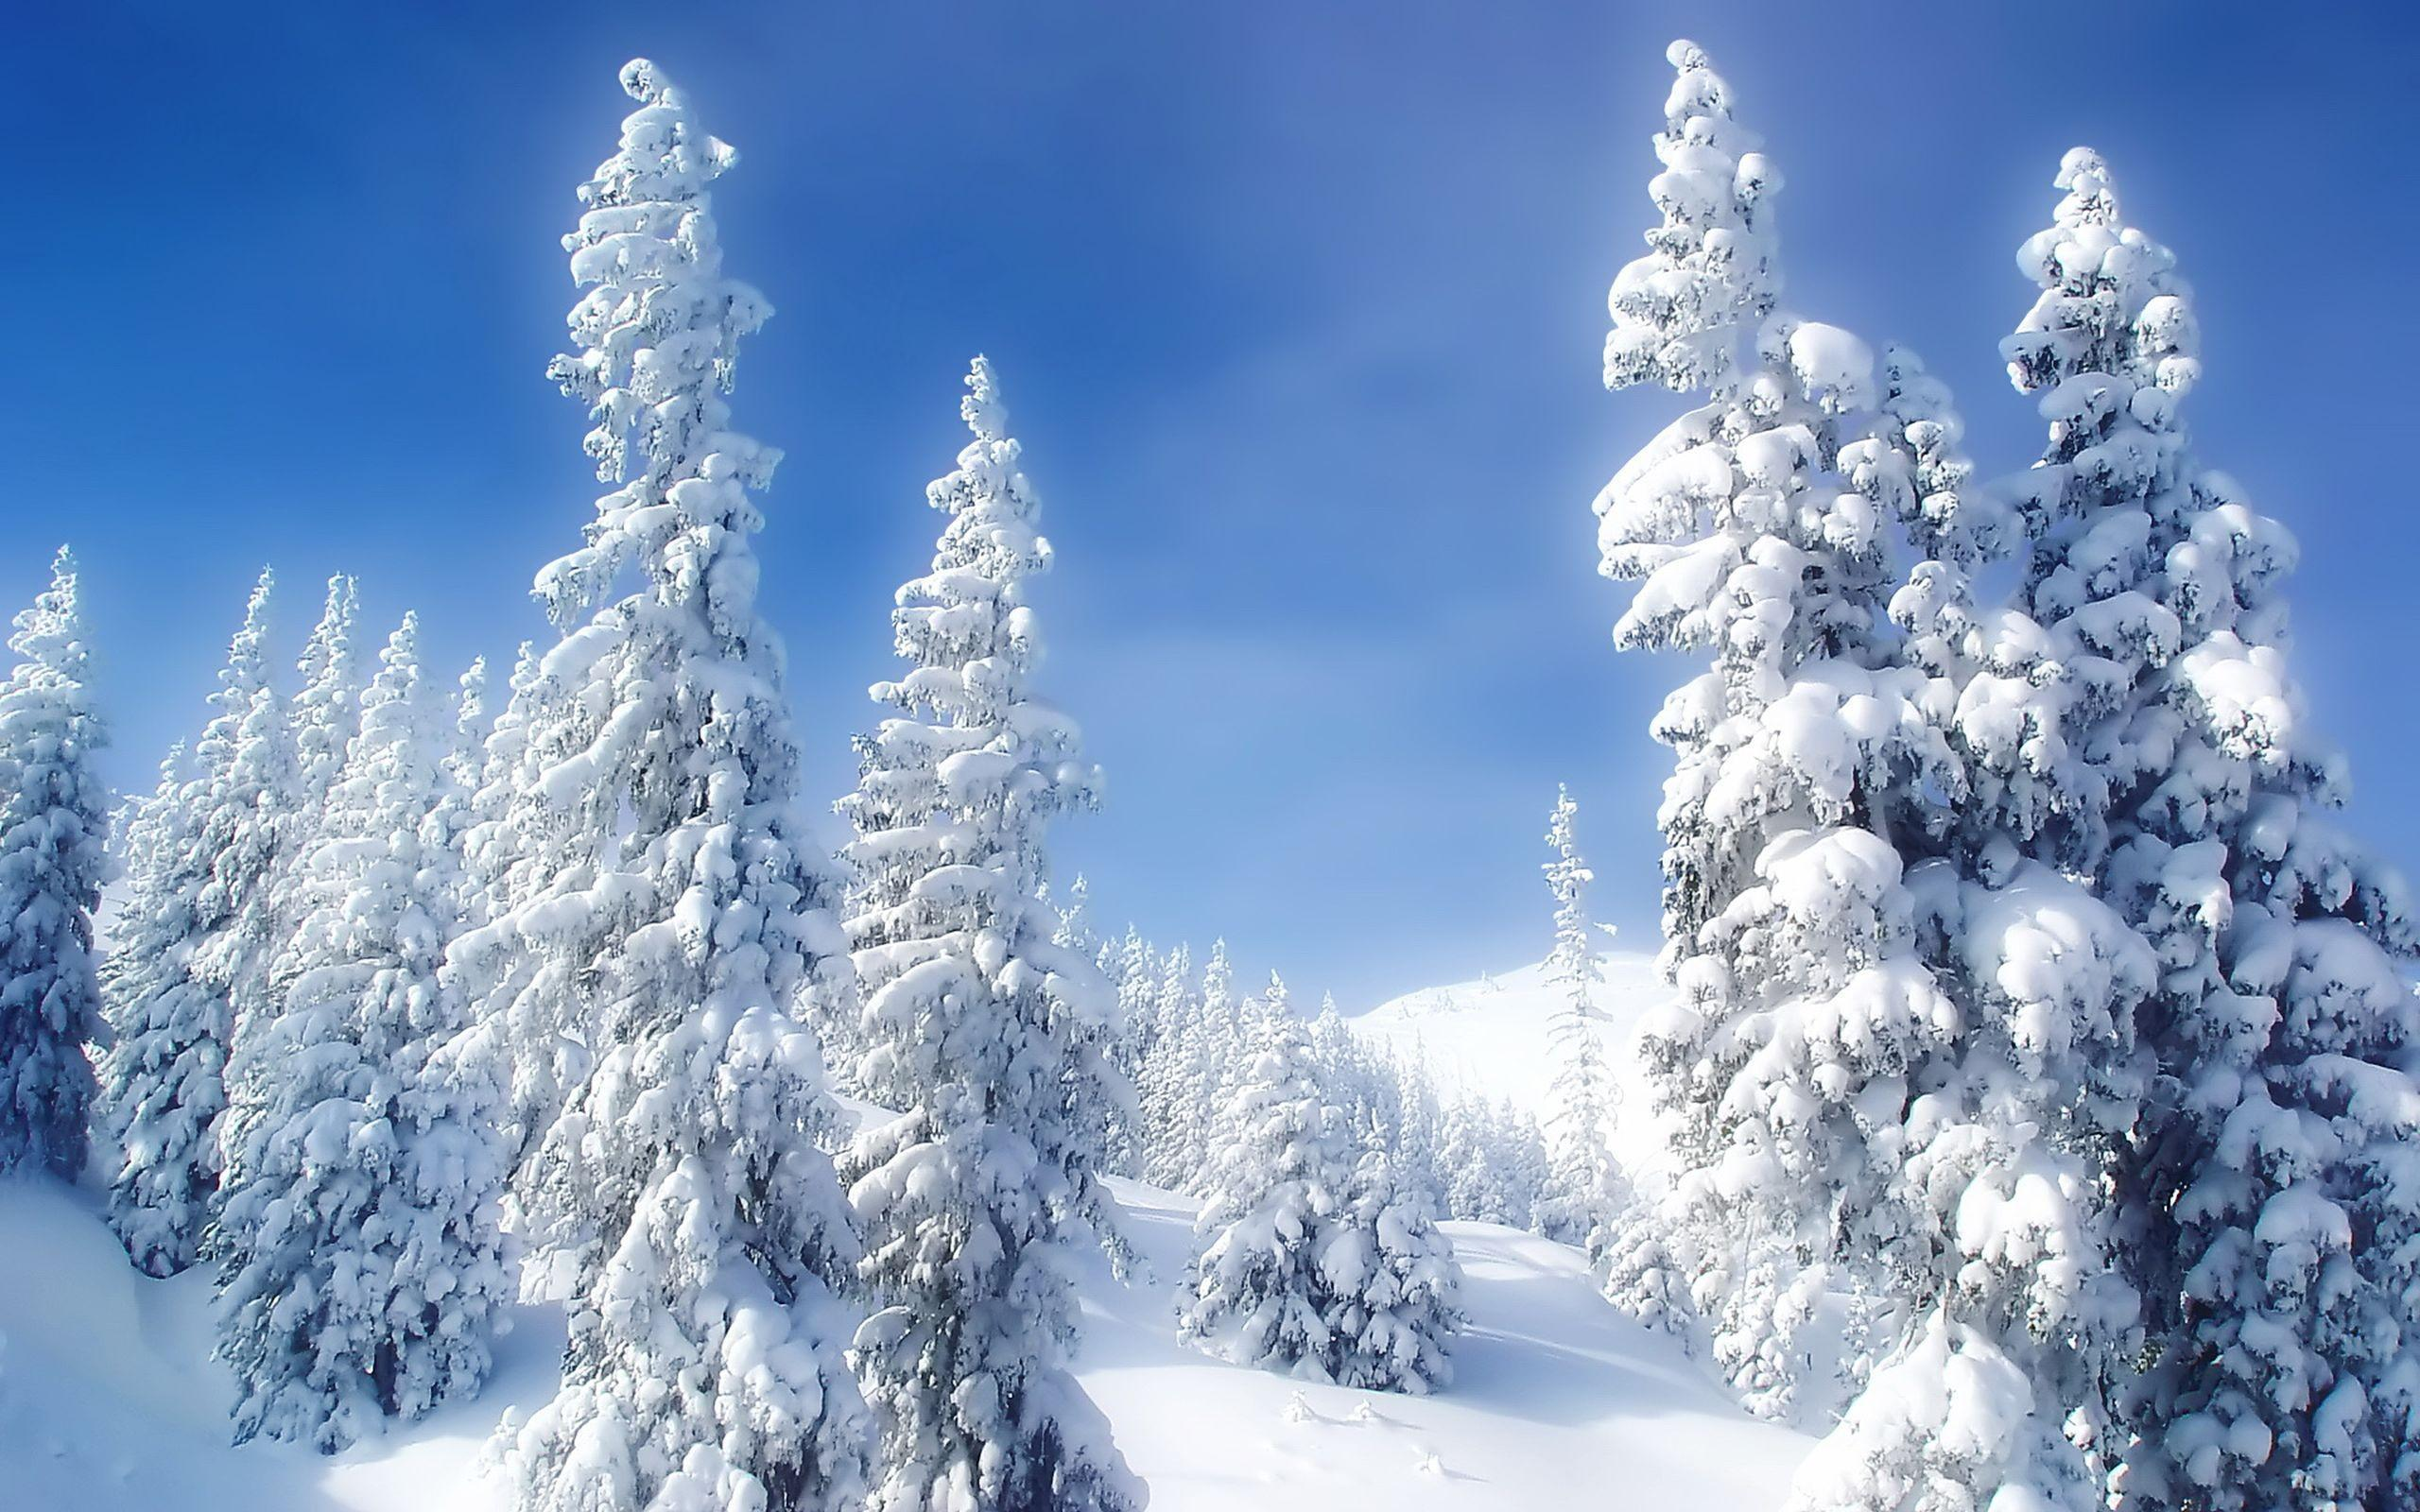 Landscapes Nature Winter Snow Trees Blue Skies High 2560x1600